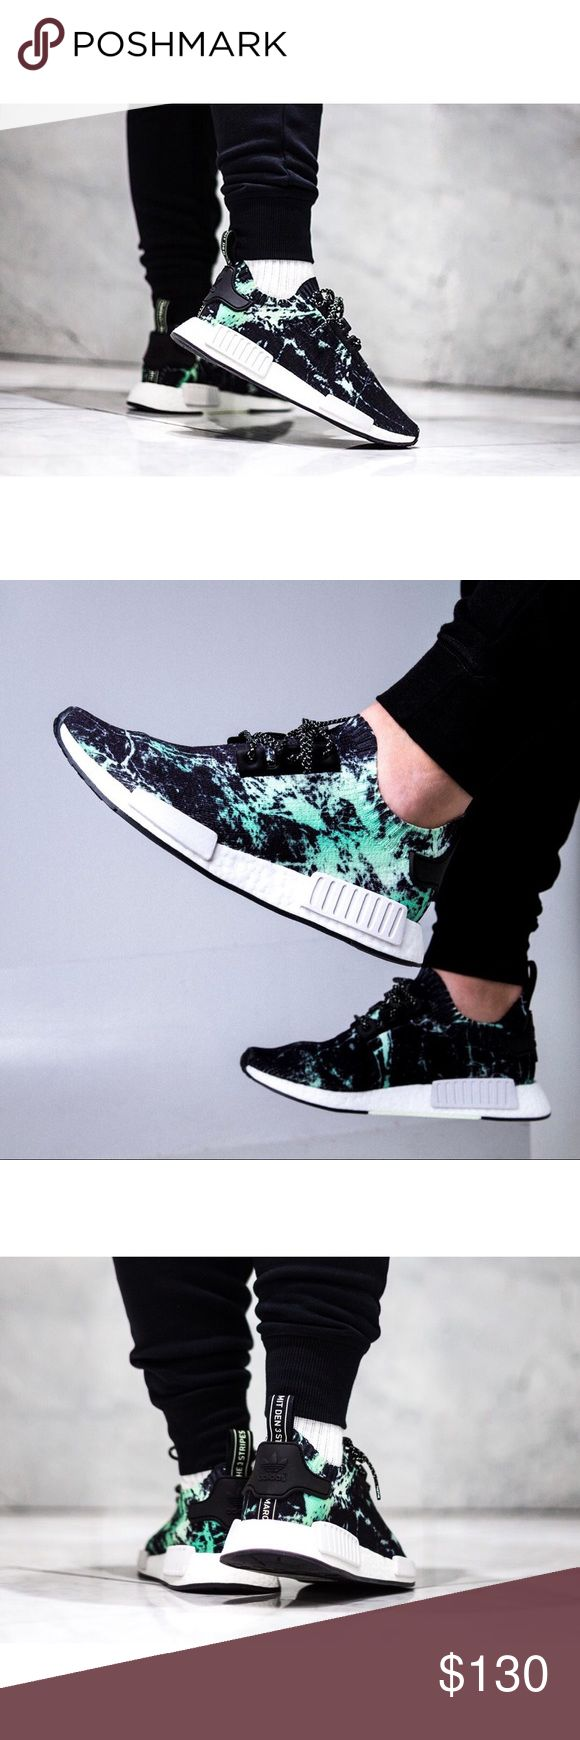 "Adidas NMD R1 Primeknit Men's Adidas NMD R1 PK ""Mint Marble"" **NEW with Box** 100% Authentic  *Additional set of black laces included* Color: Bl…"